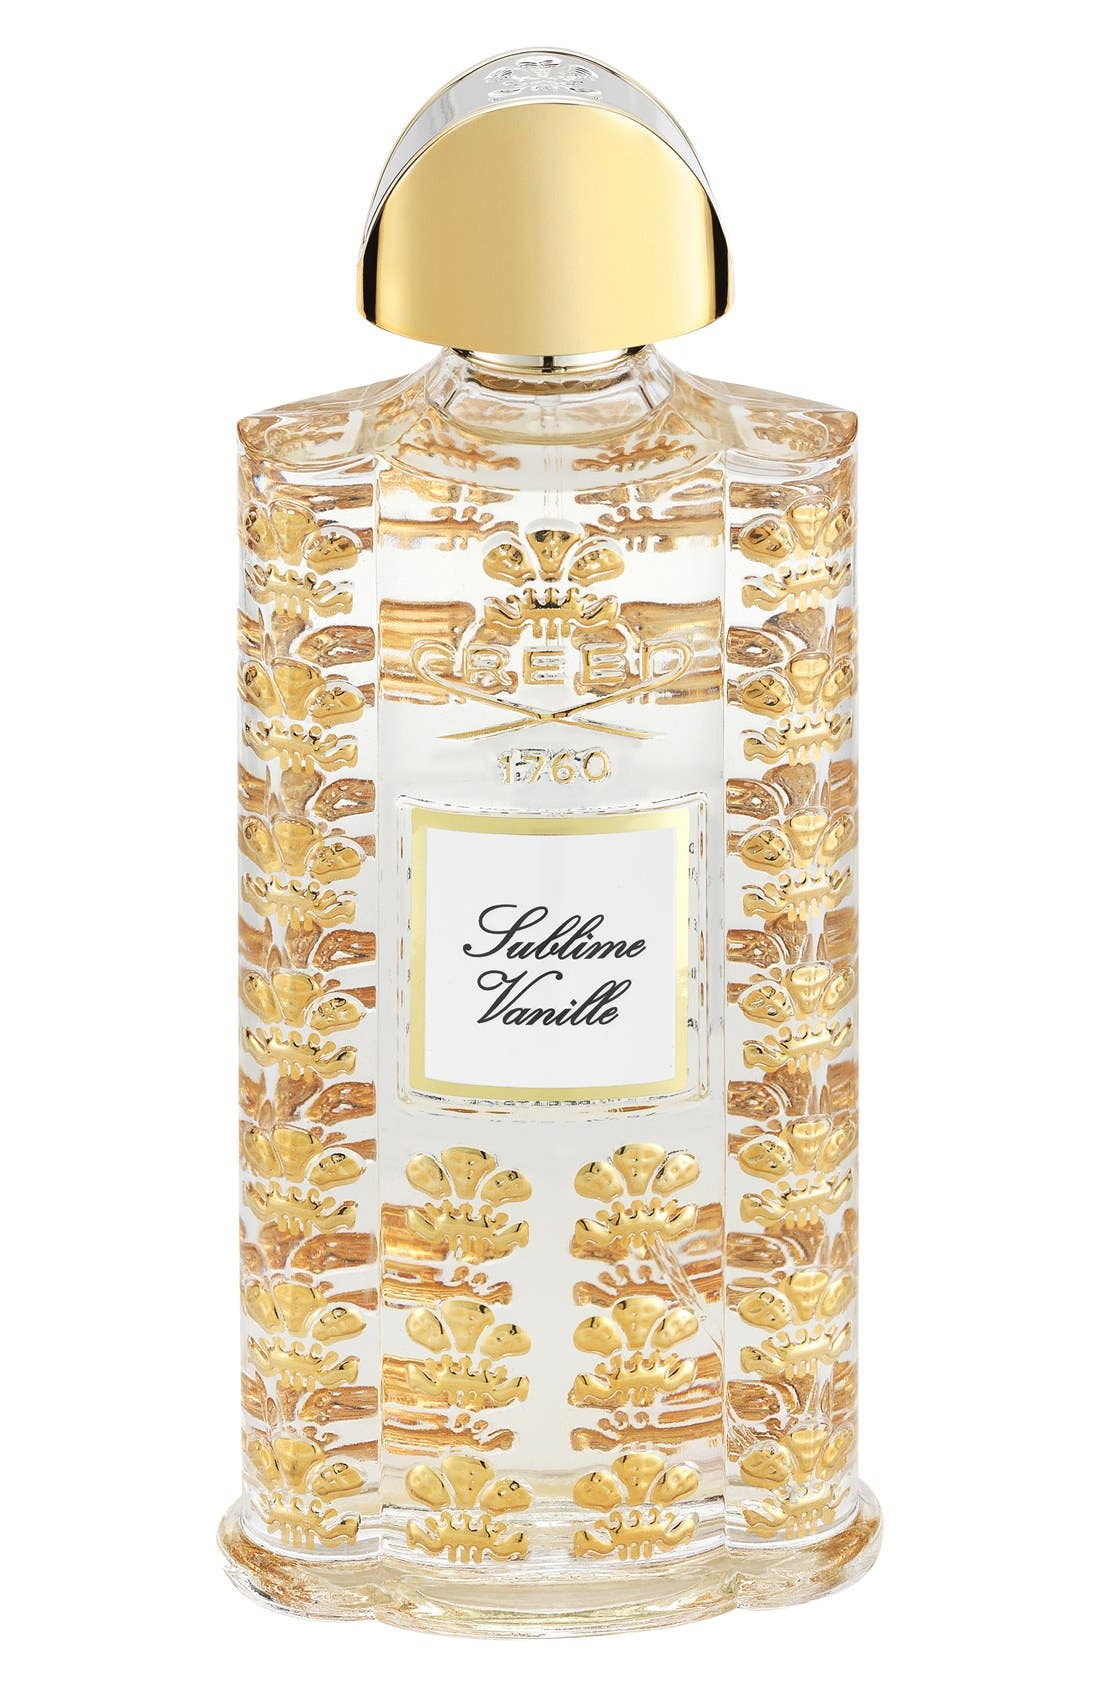 Creed Les Royales Exclusives Sublime Vanille Fragrance (2.5 oz.)